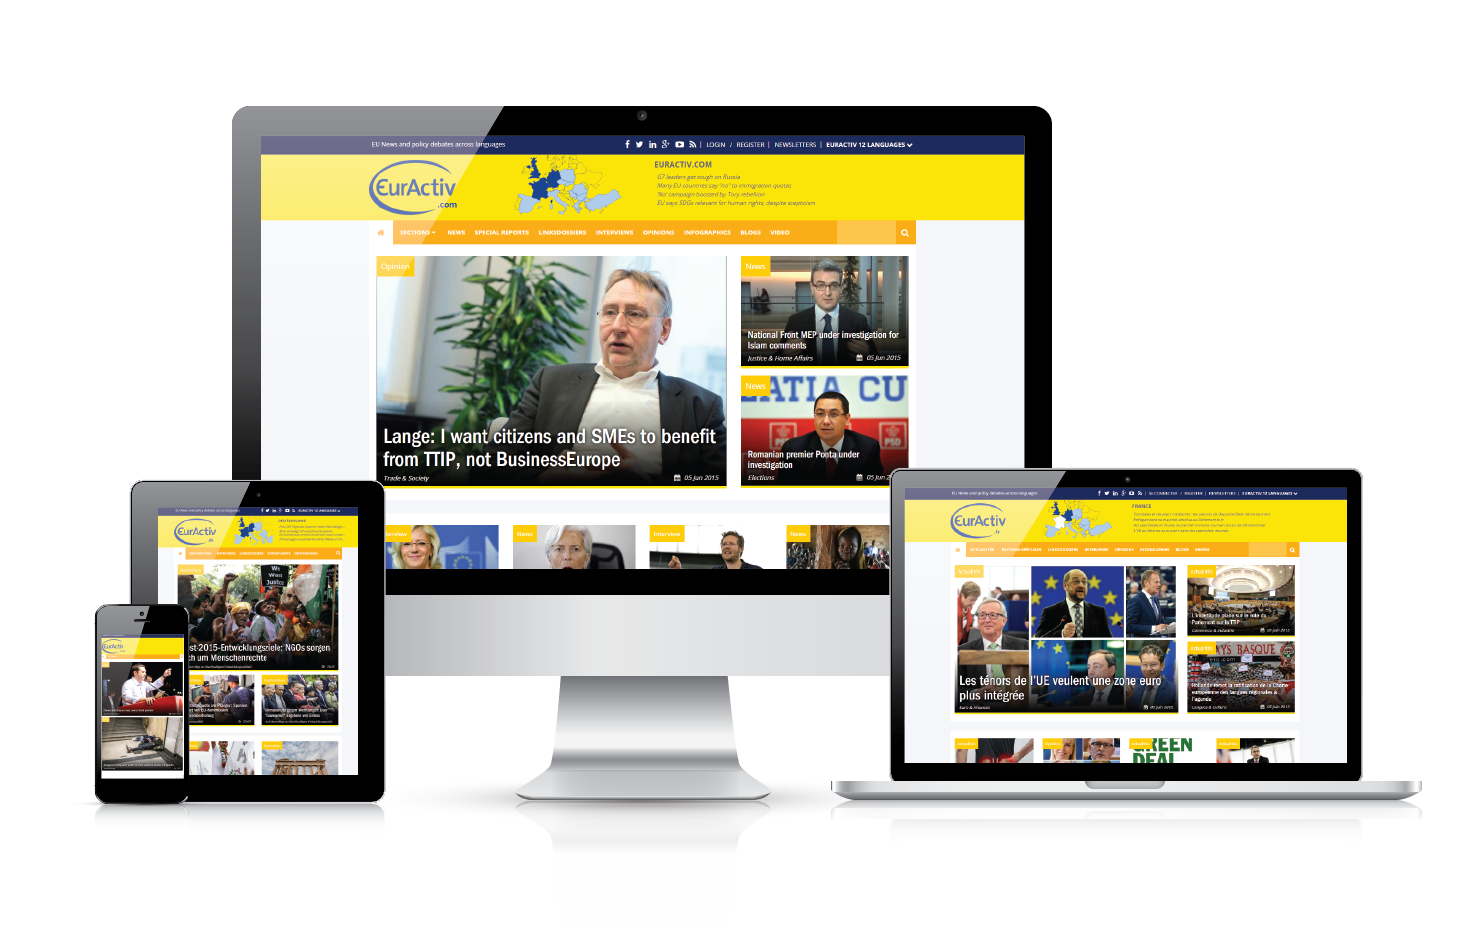 EURACTIV's redesigned websites designed with all device types in mind.